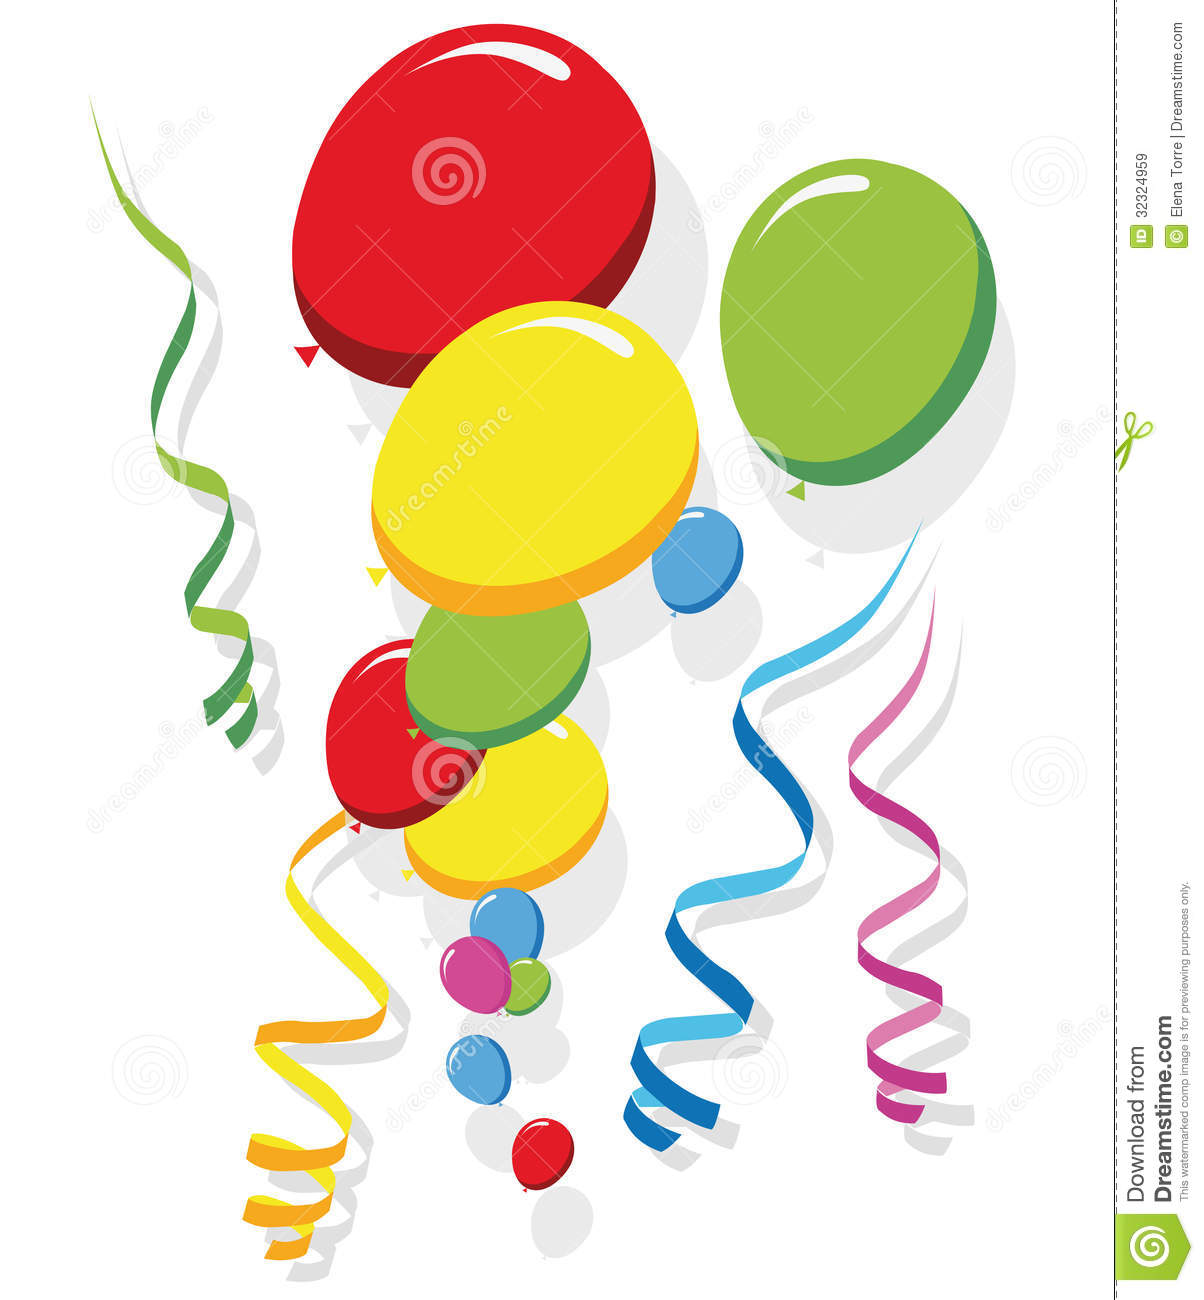 clipart balloons and streamers - photo #8